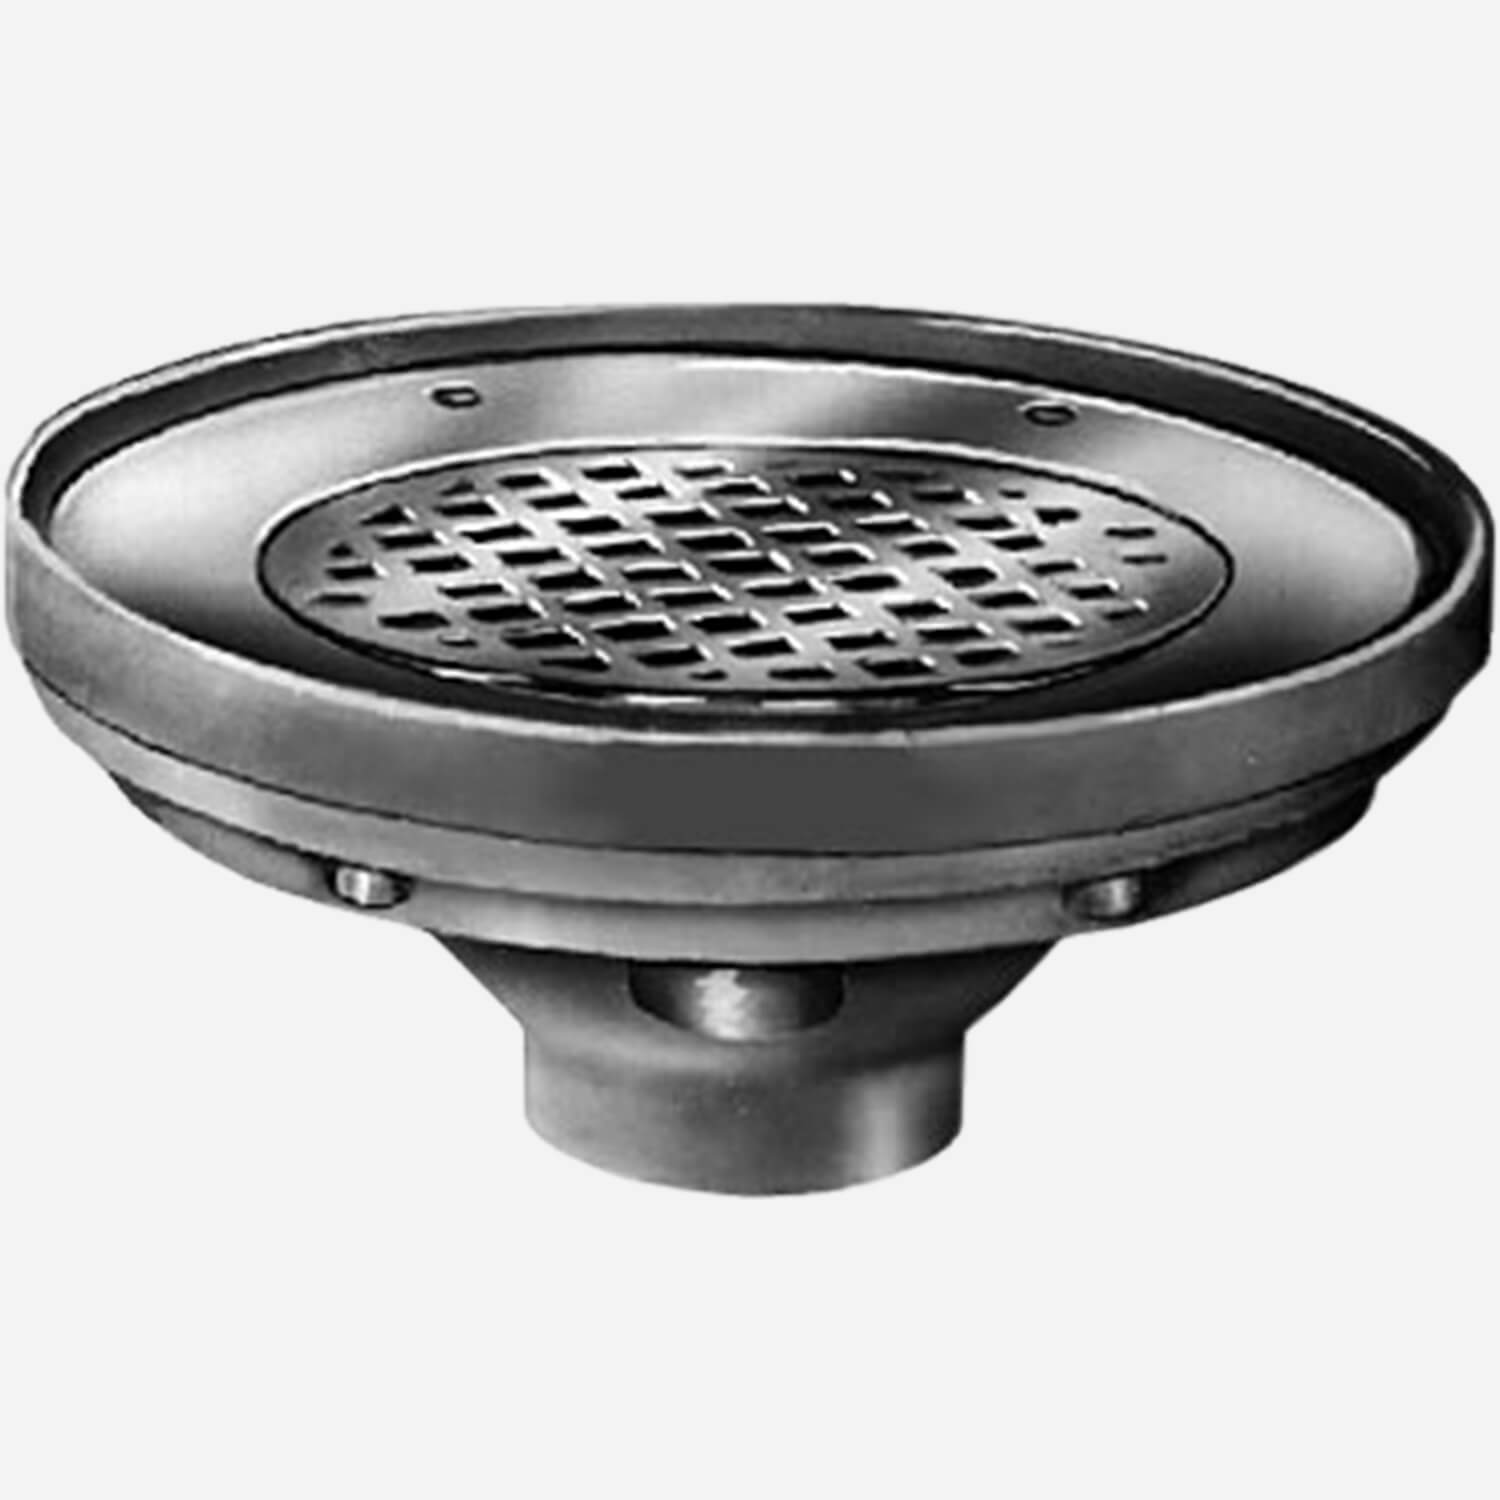 Sani-Ceptor® Sanitary Acid Resistant Coated Sanitary Refrigerator Drain with Recessed Grate